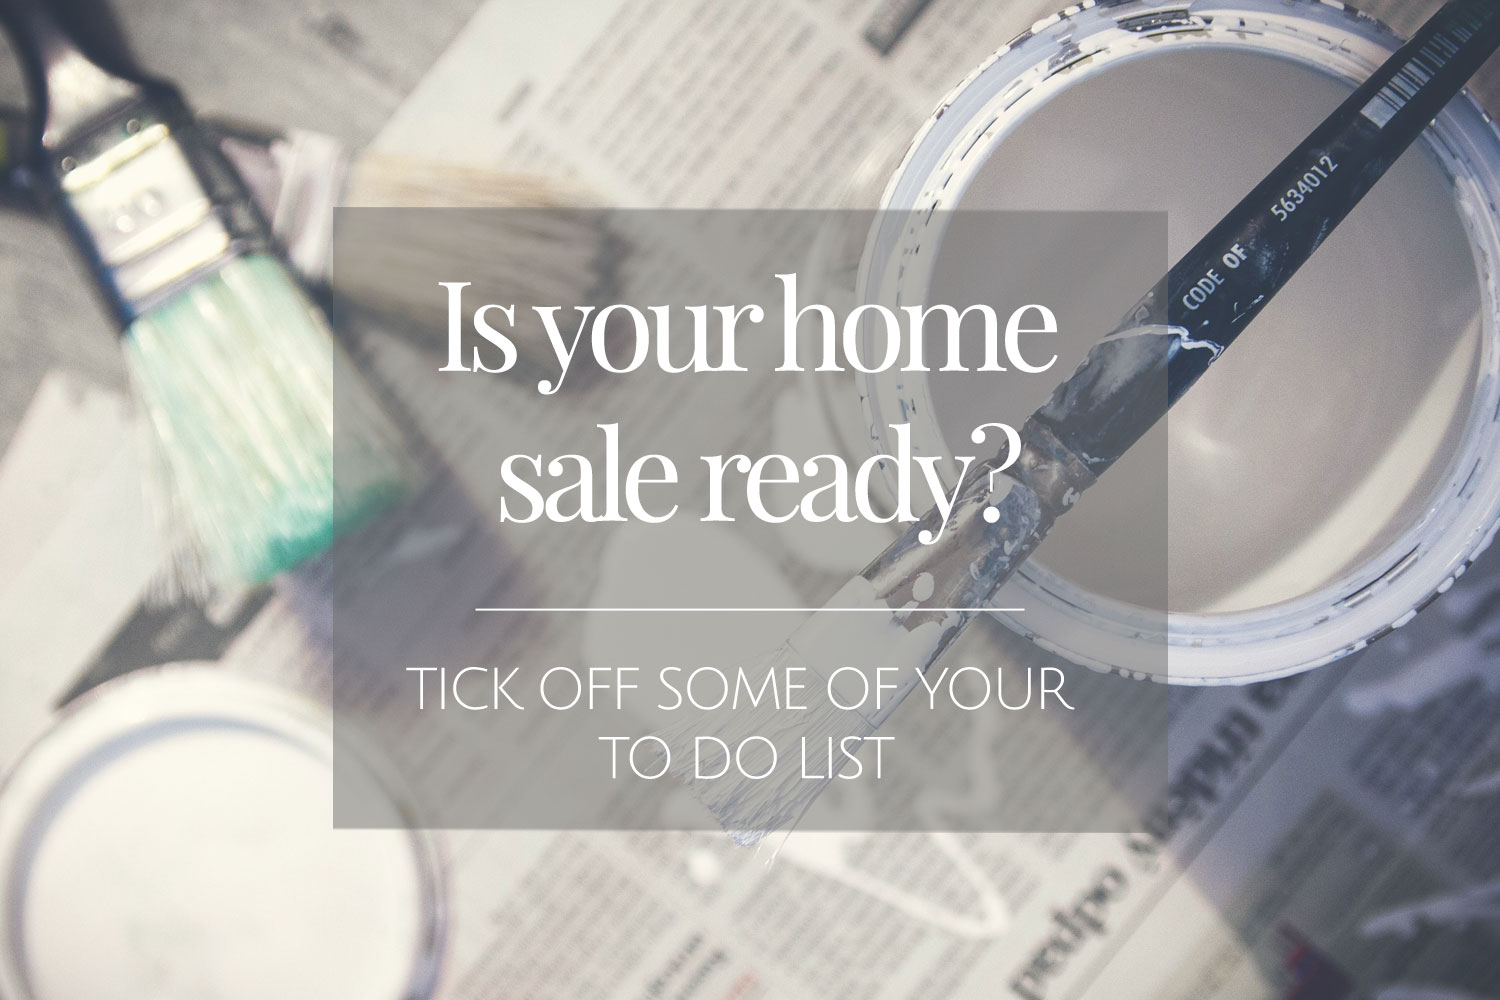 is your home sale ready